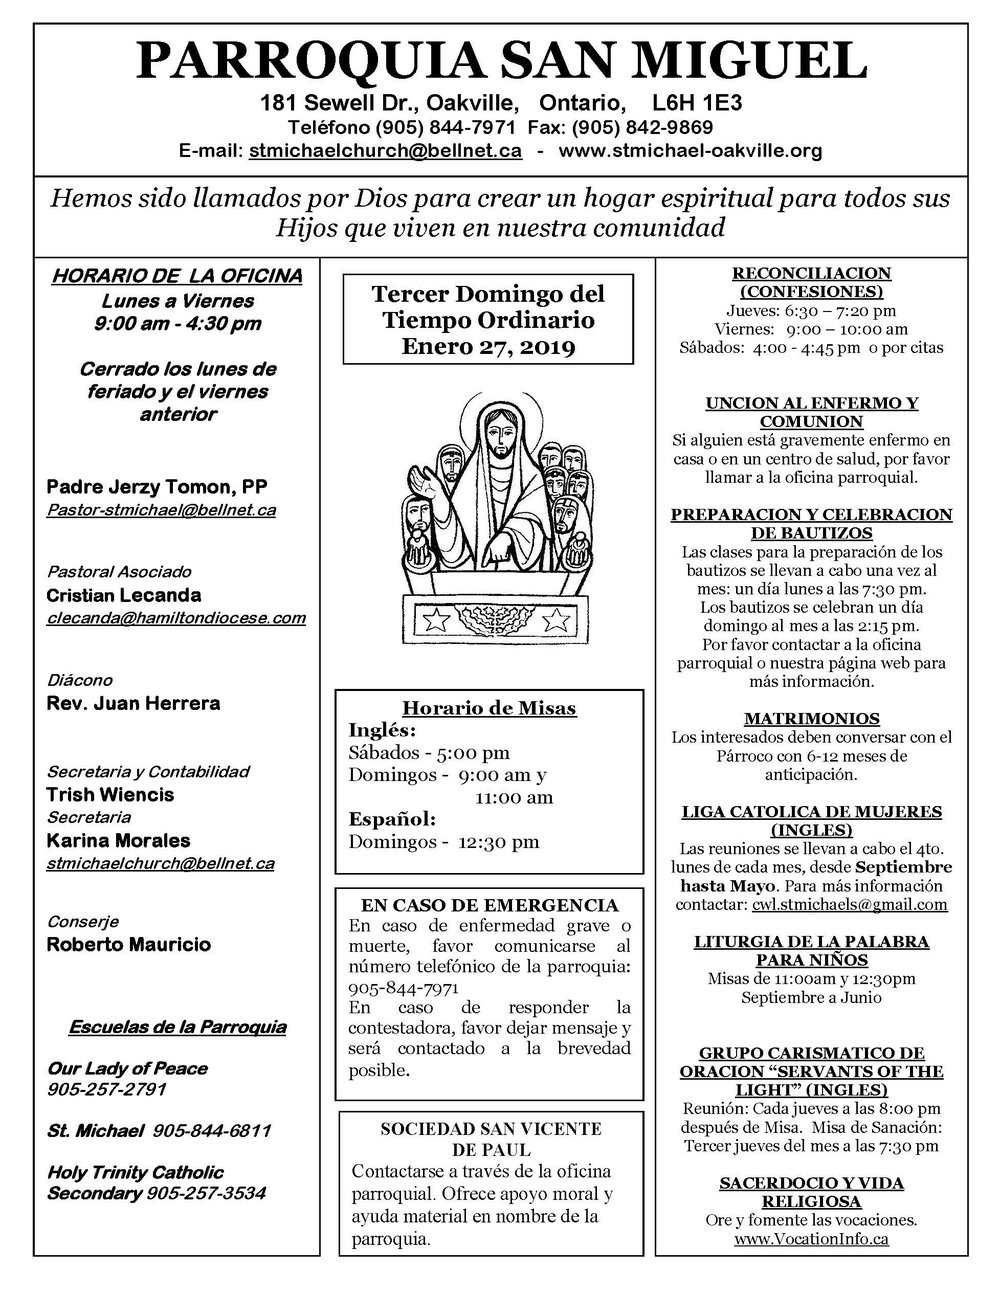 Spanish Bulletin - 3rd Sunday in Ordinary Time, January 27, 2019_Page_1.jpg